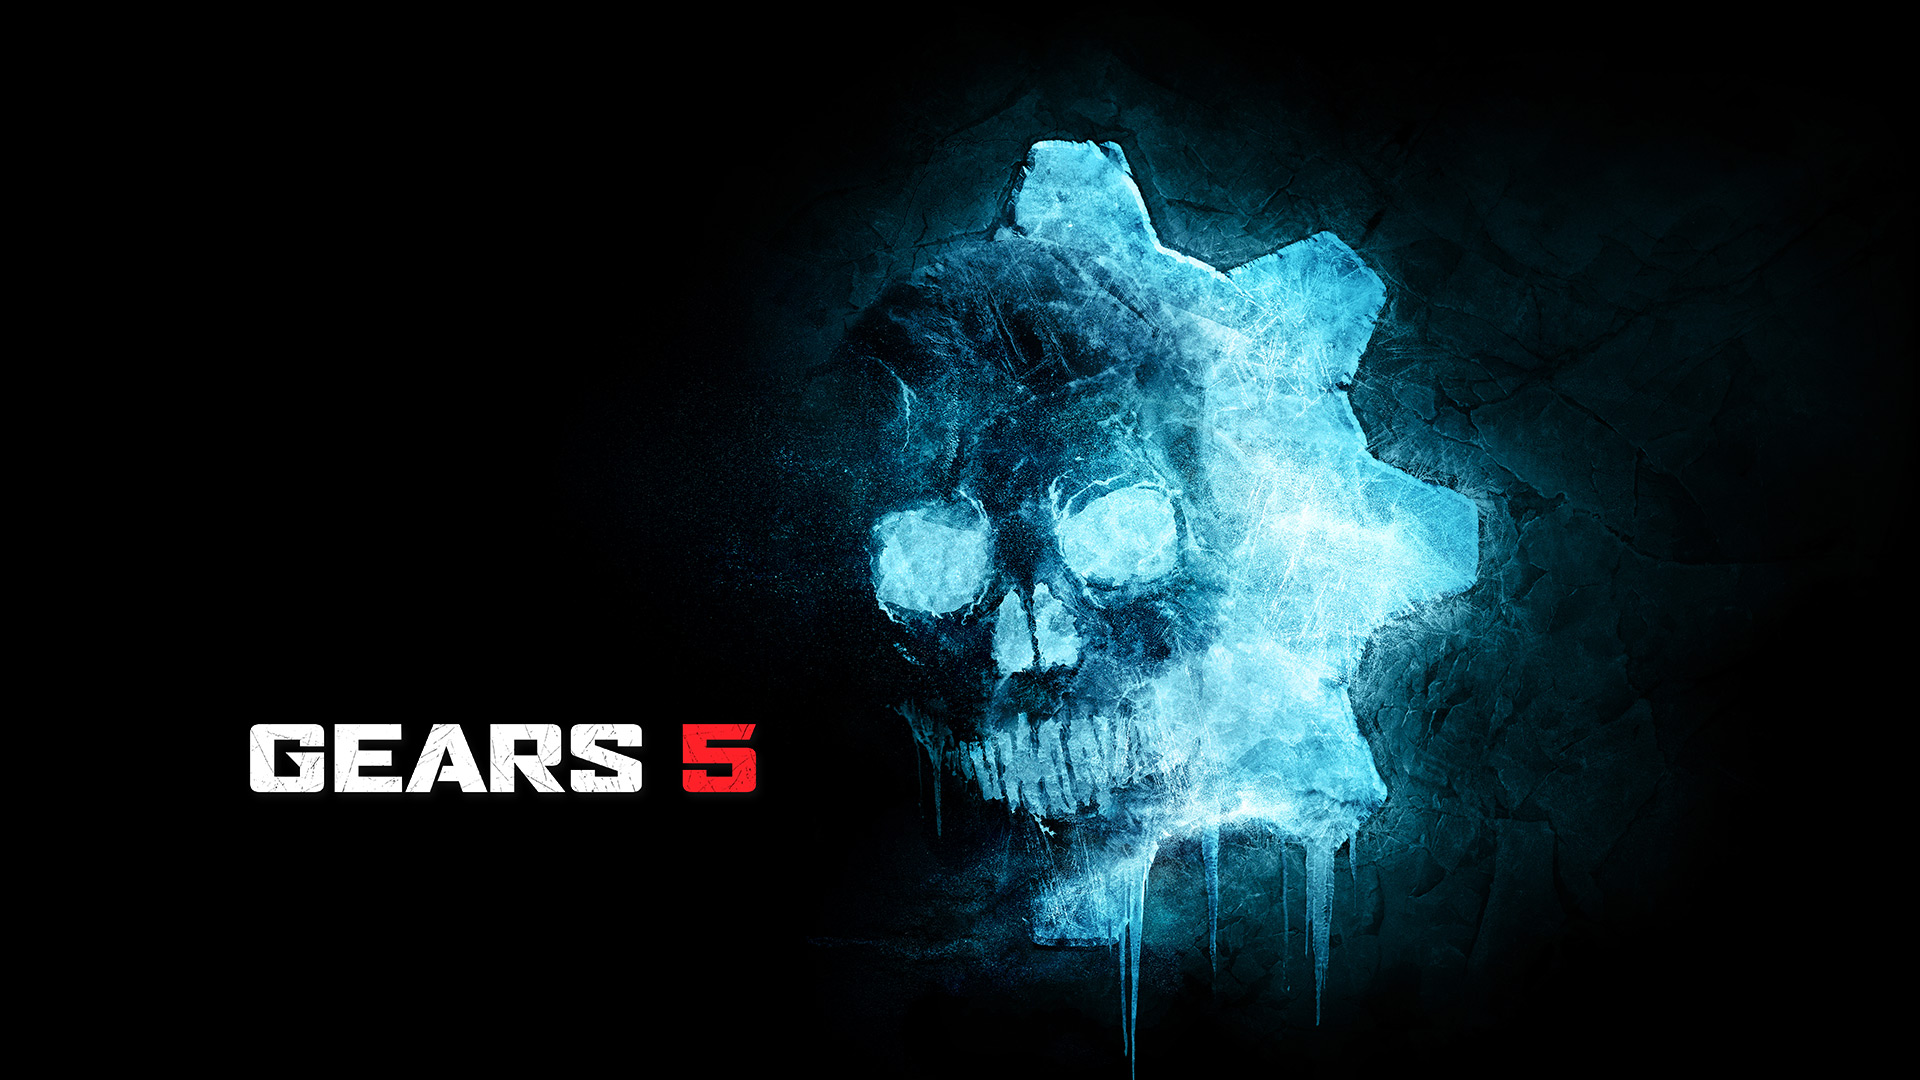 Artistic rendering of a human skull in front of an icy glowing blue gear